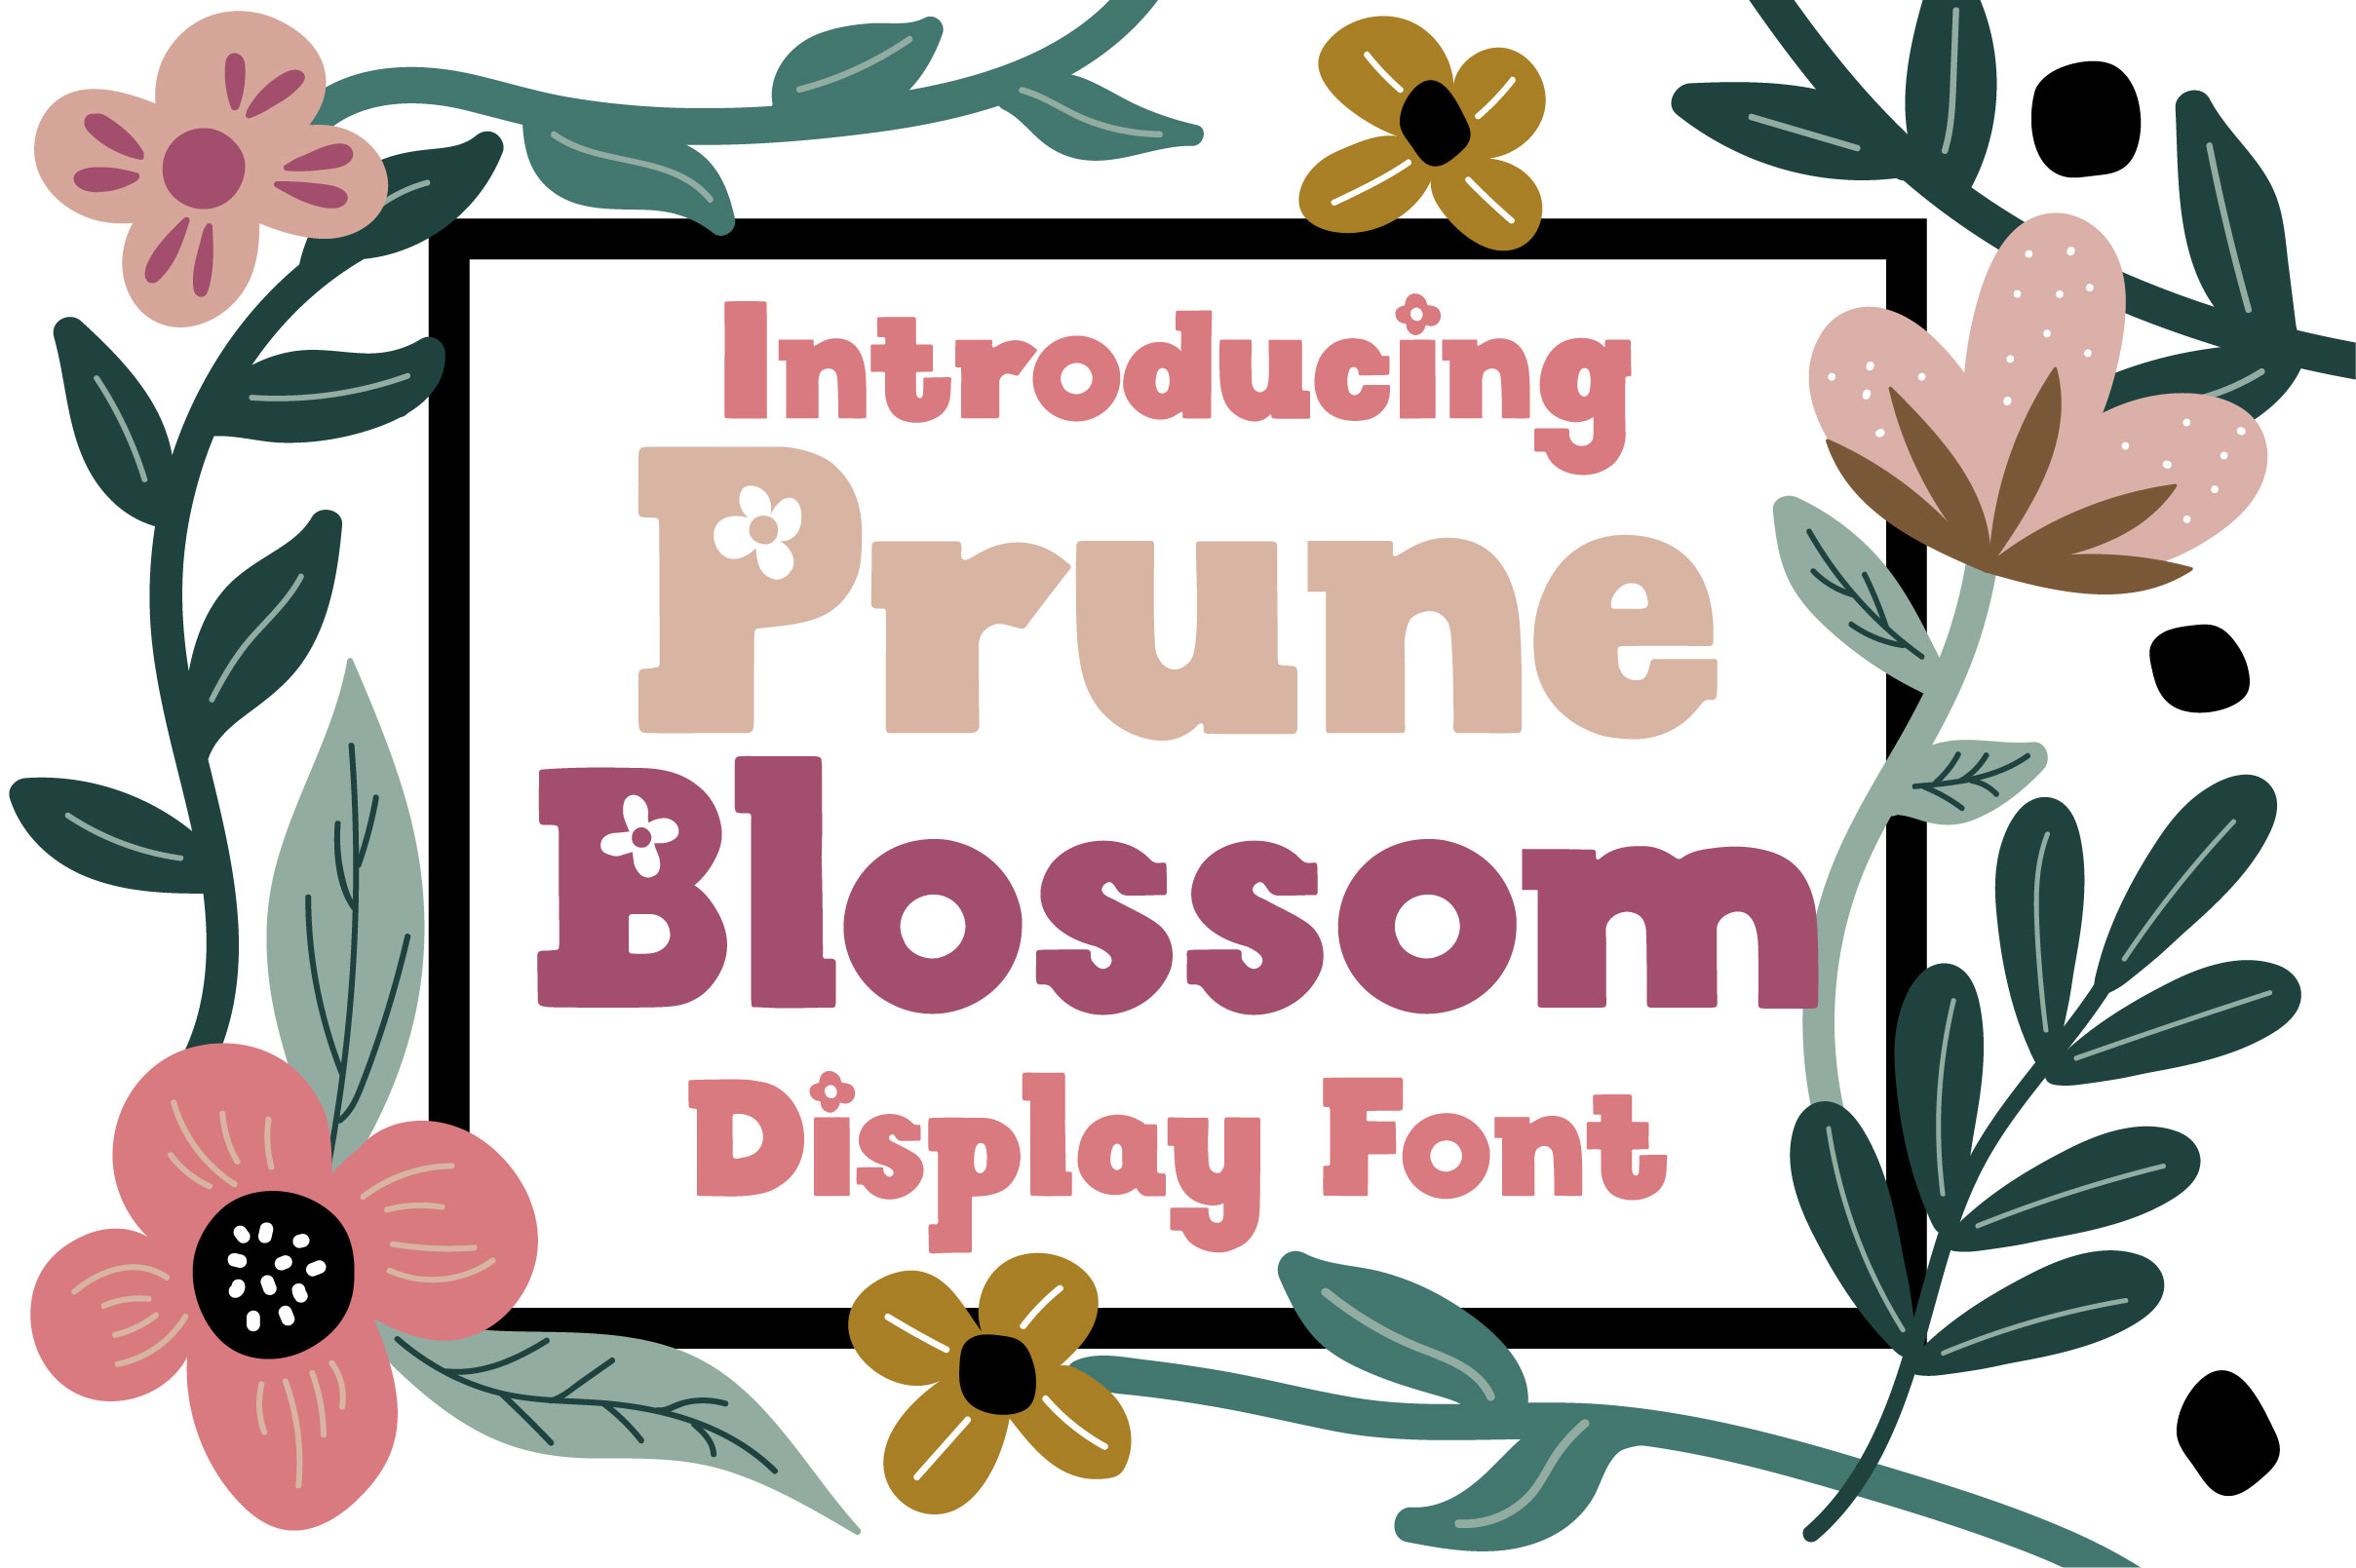 Prune Blossom Font example image 1